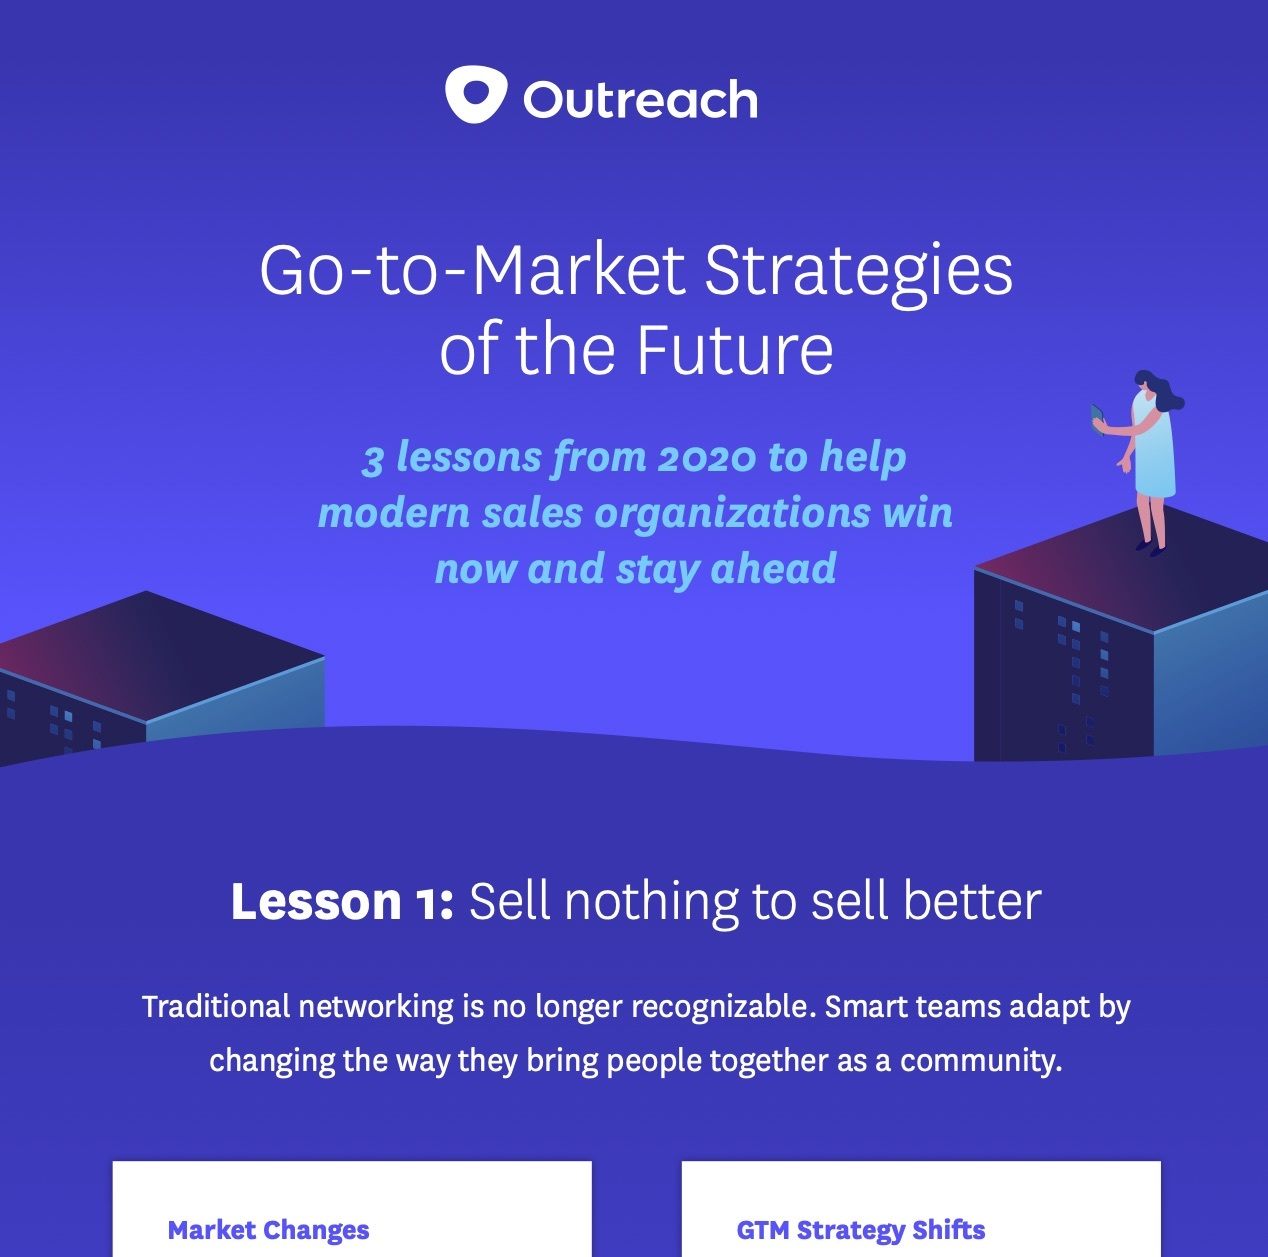 Go-to-Market Strategies of the Future